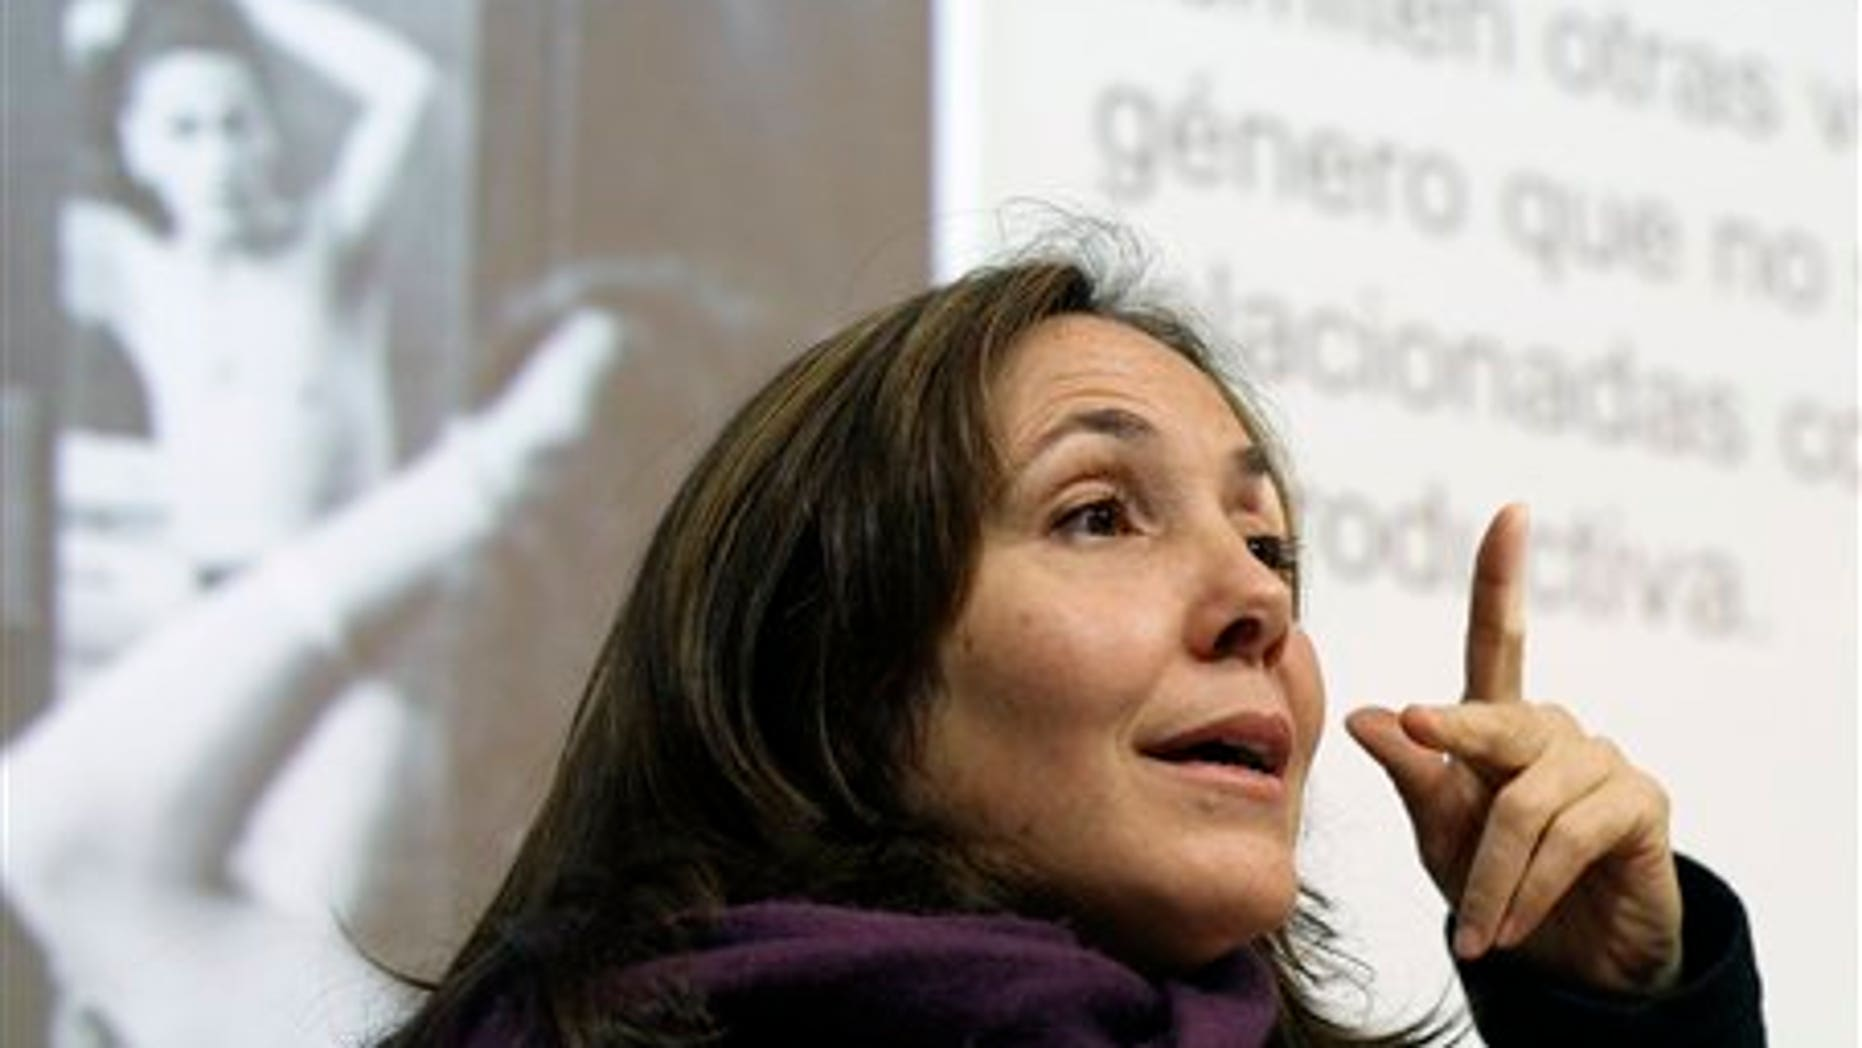 Mariela Castro, daughter of Cuban President Raul Castro, speaks during an academic conference at San Francisco General Hospital in San Francisco, Wednesday, May 23, 2012. Castro, an outspoken gay rights advocate, spoke at a medical lecture for health care providers on care for transgender patients. (AP Photo/Eric Risberg)